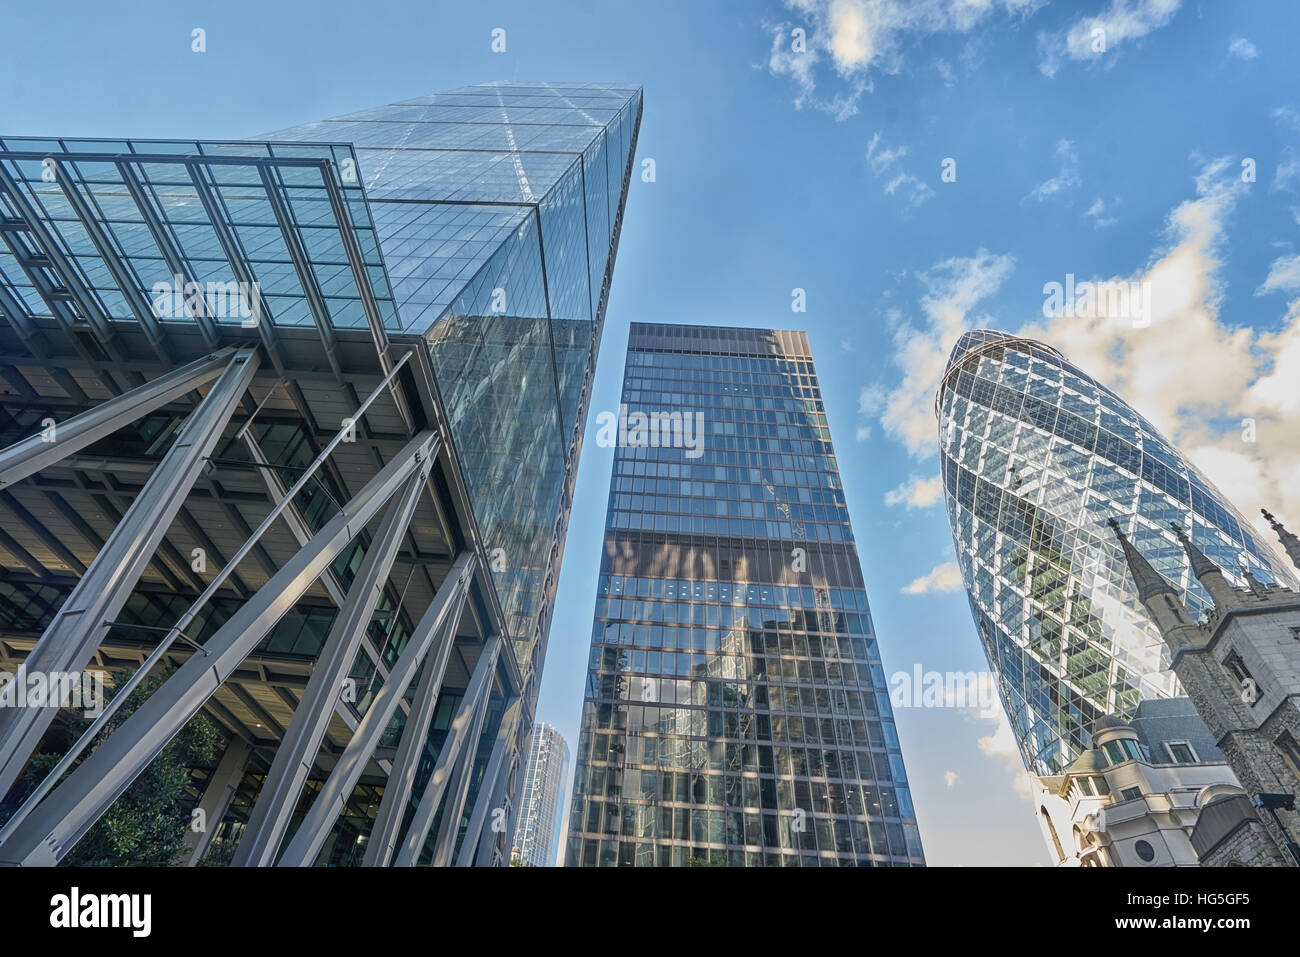 The Gherkin, Cheesegrater,  London financial district.  Tall buildings.  City of London - Stock Image